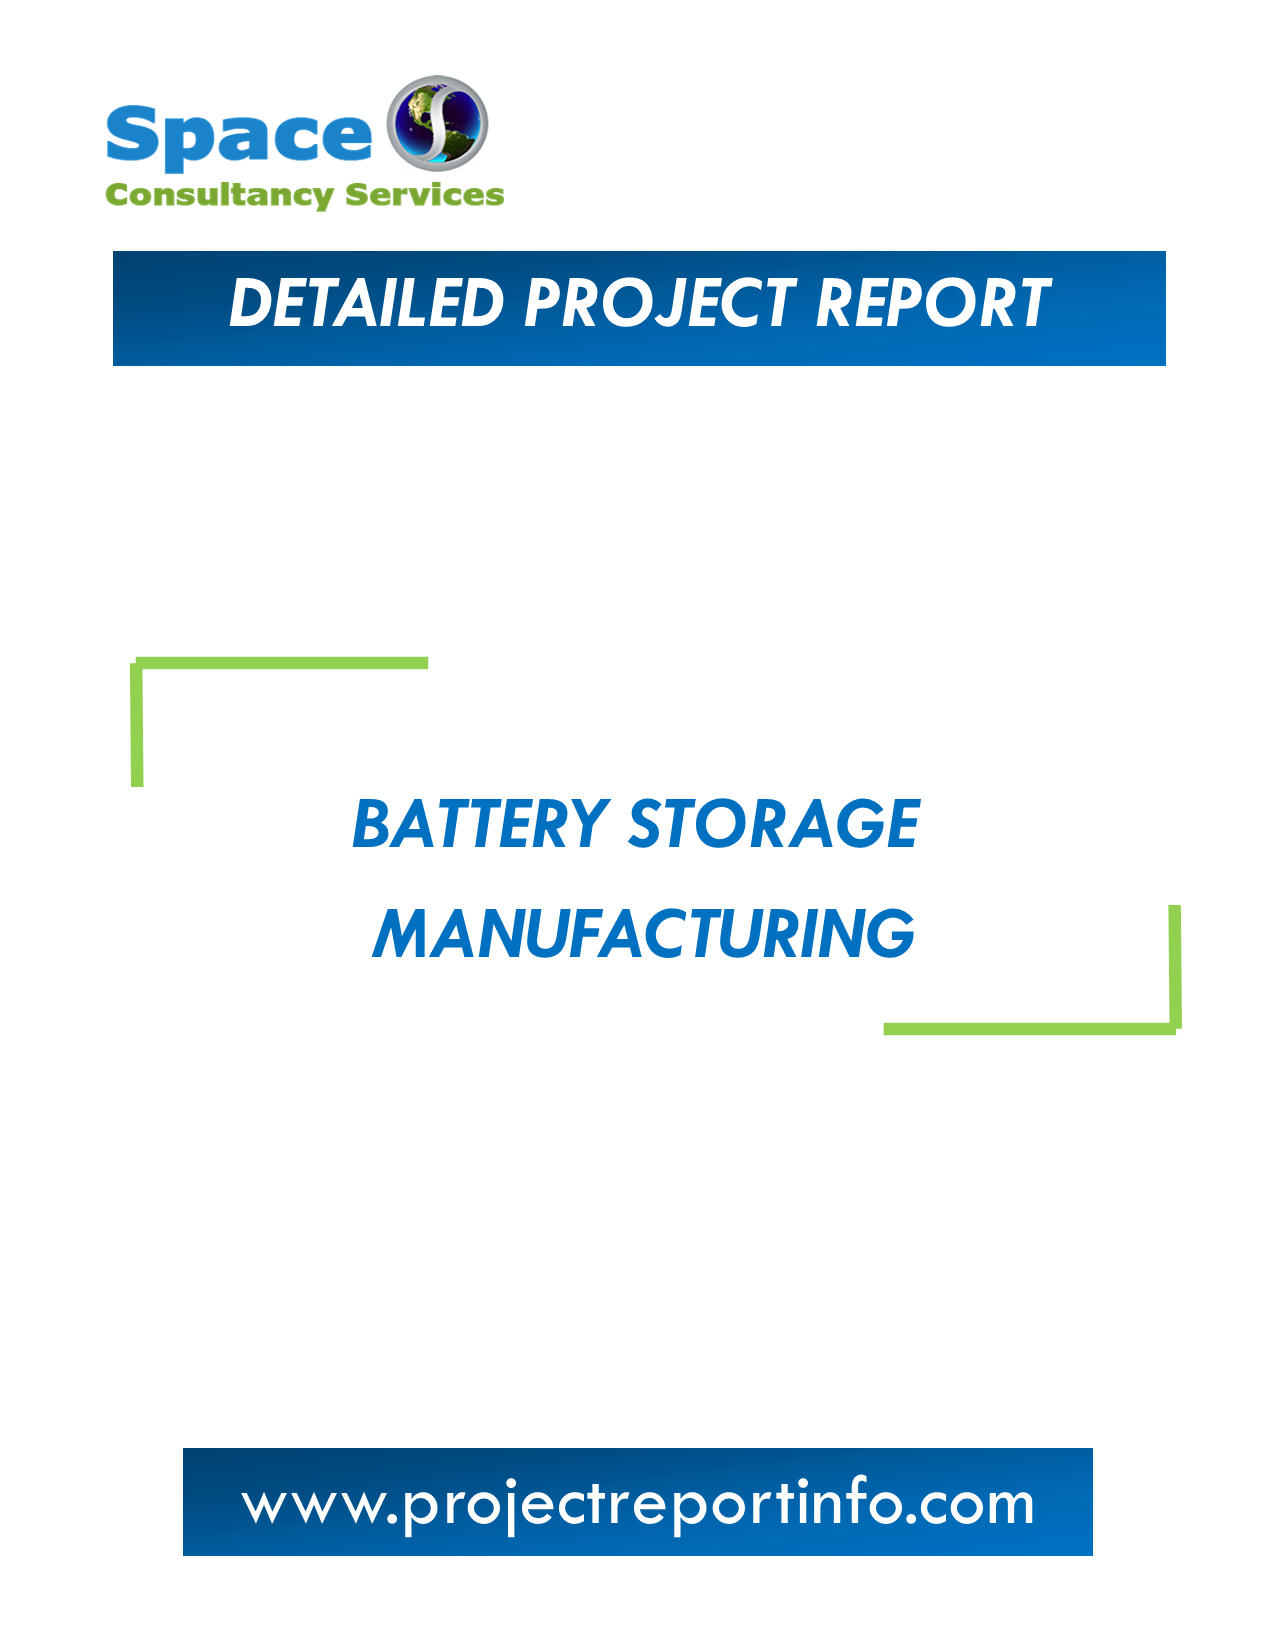 Battery Storage Manufacturing Project Report